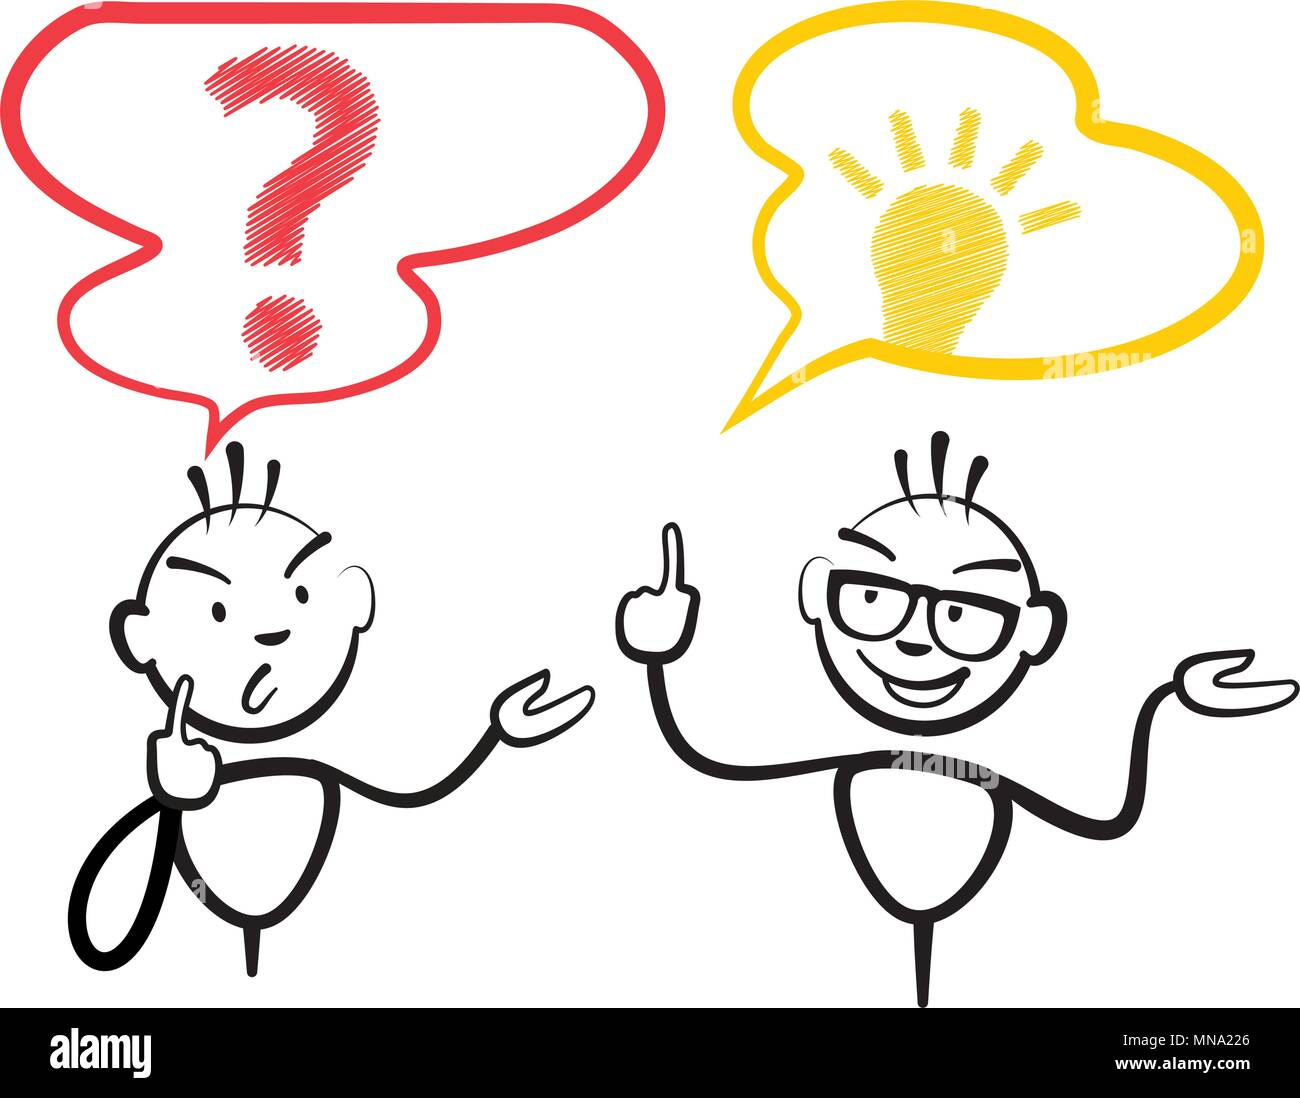 Stick figure question mark and idea, Stickman vector drawing on white background - Stock Vector